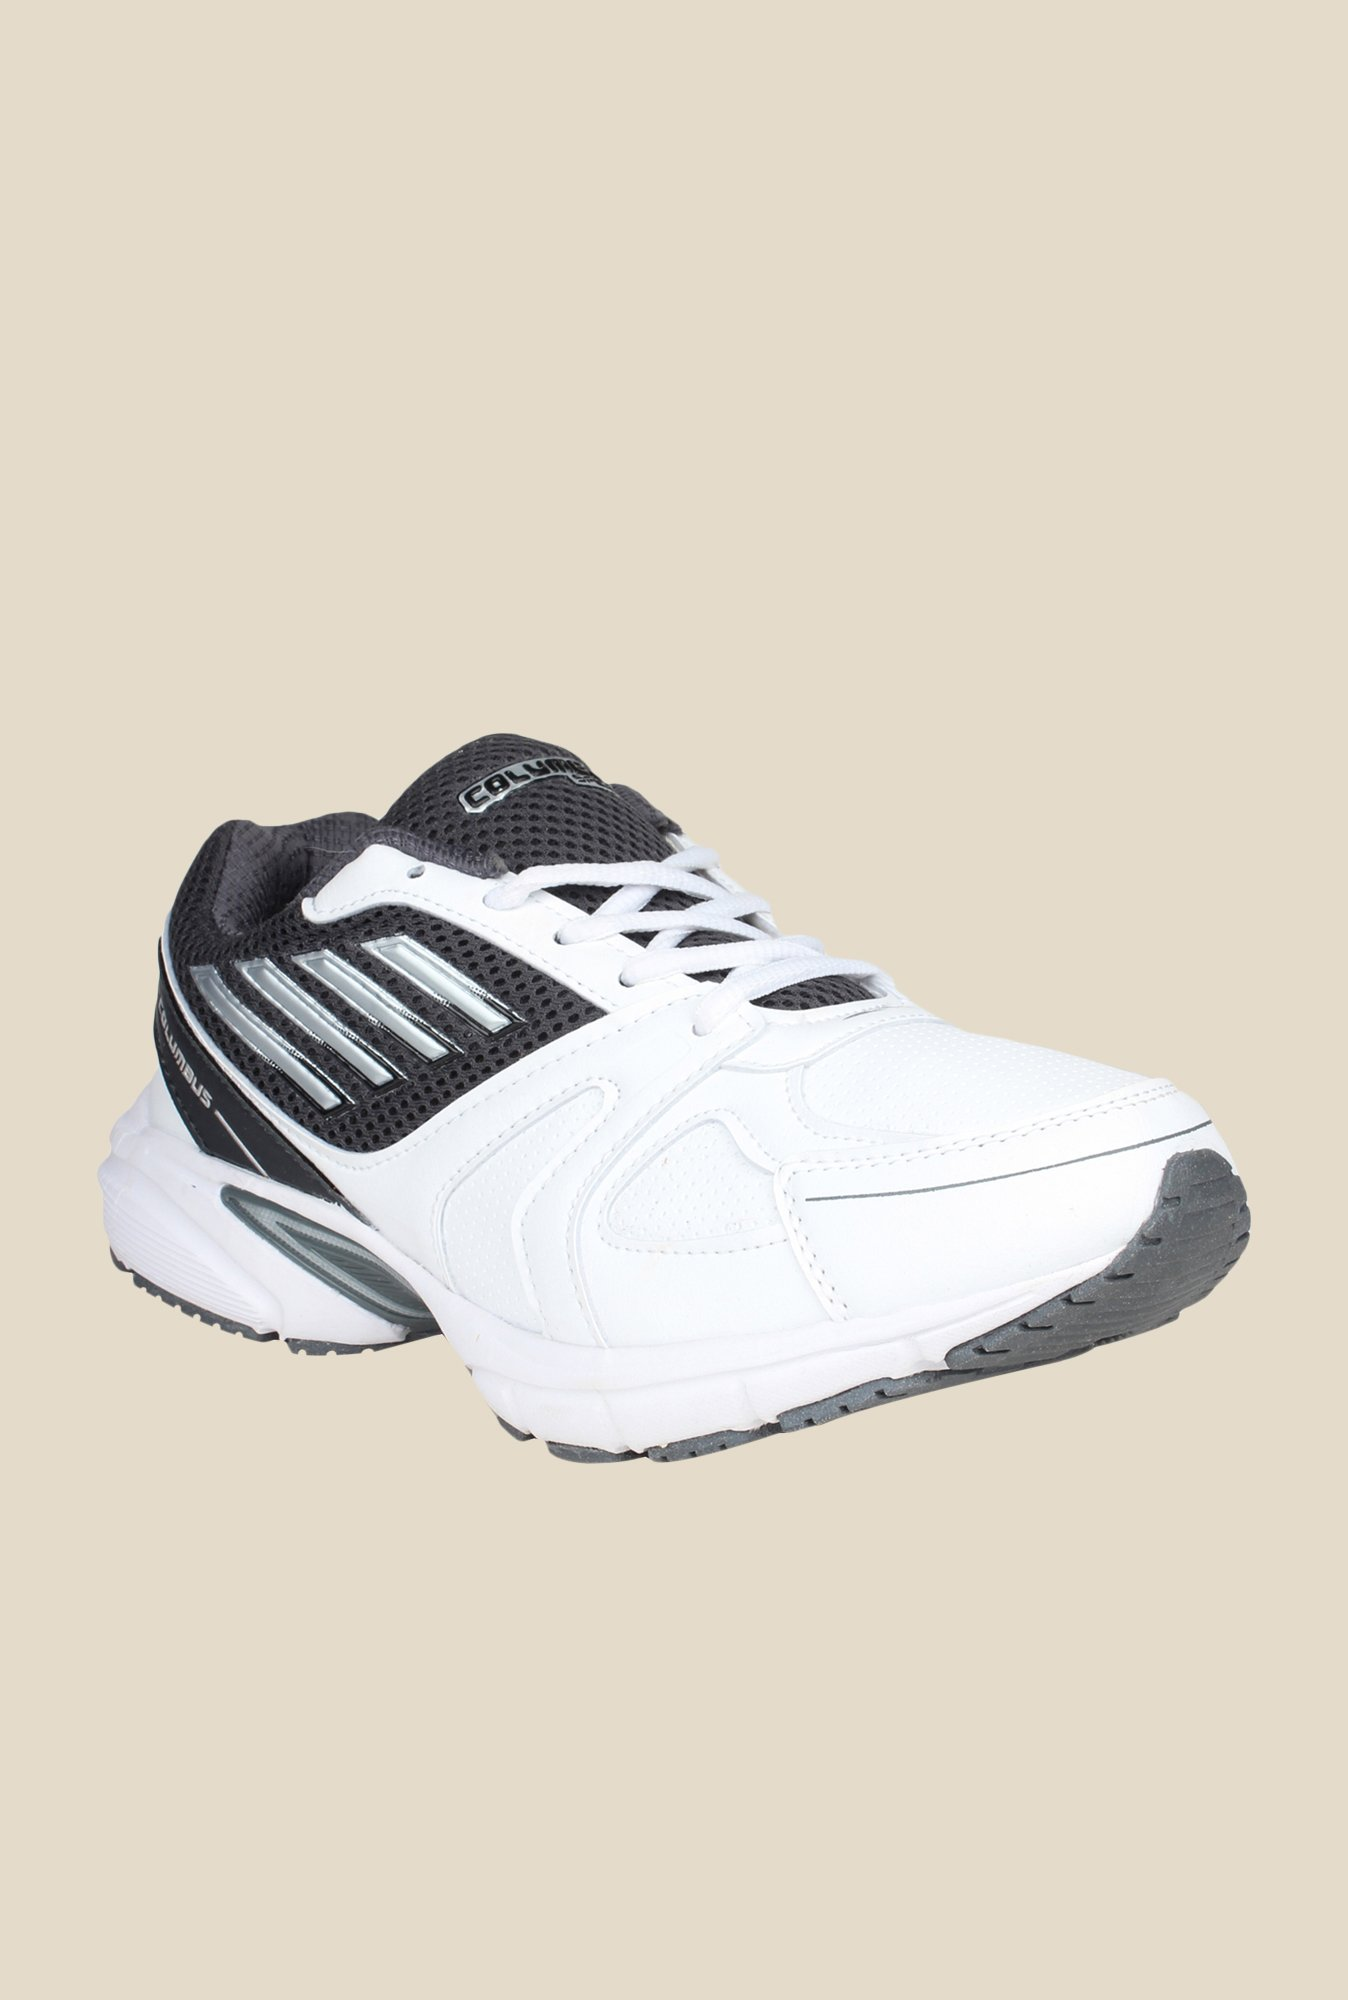 Columbus ADY-Print White & Black Training Shoes